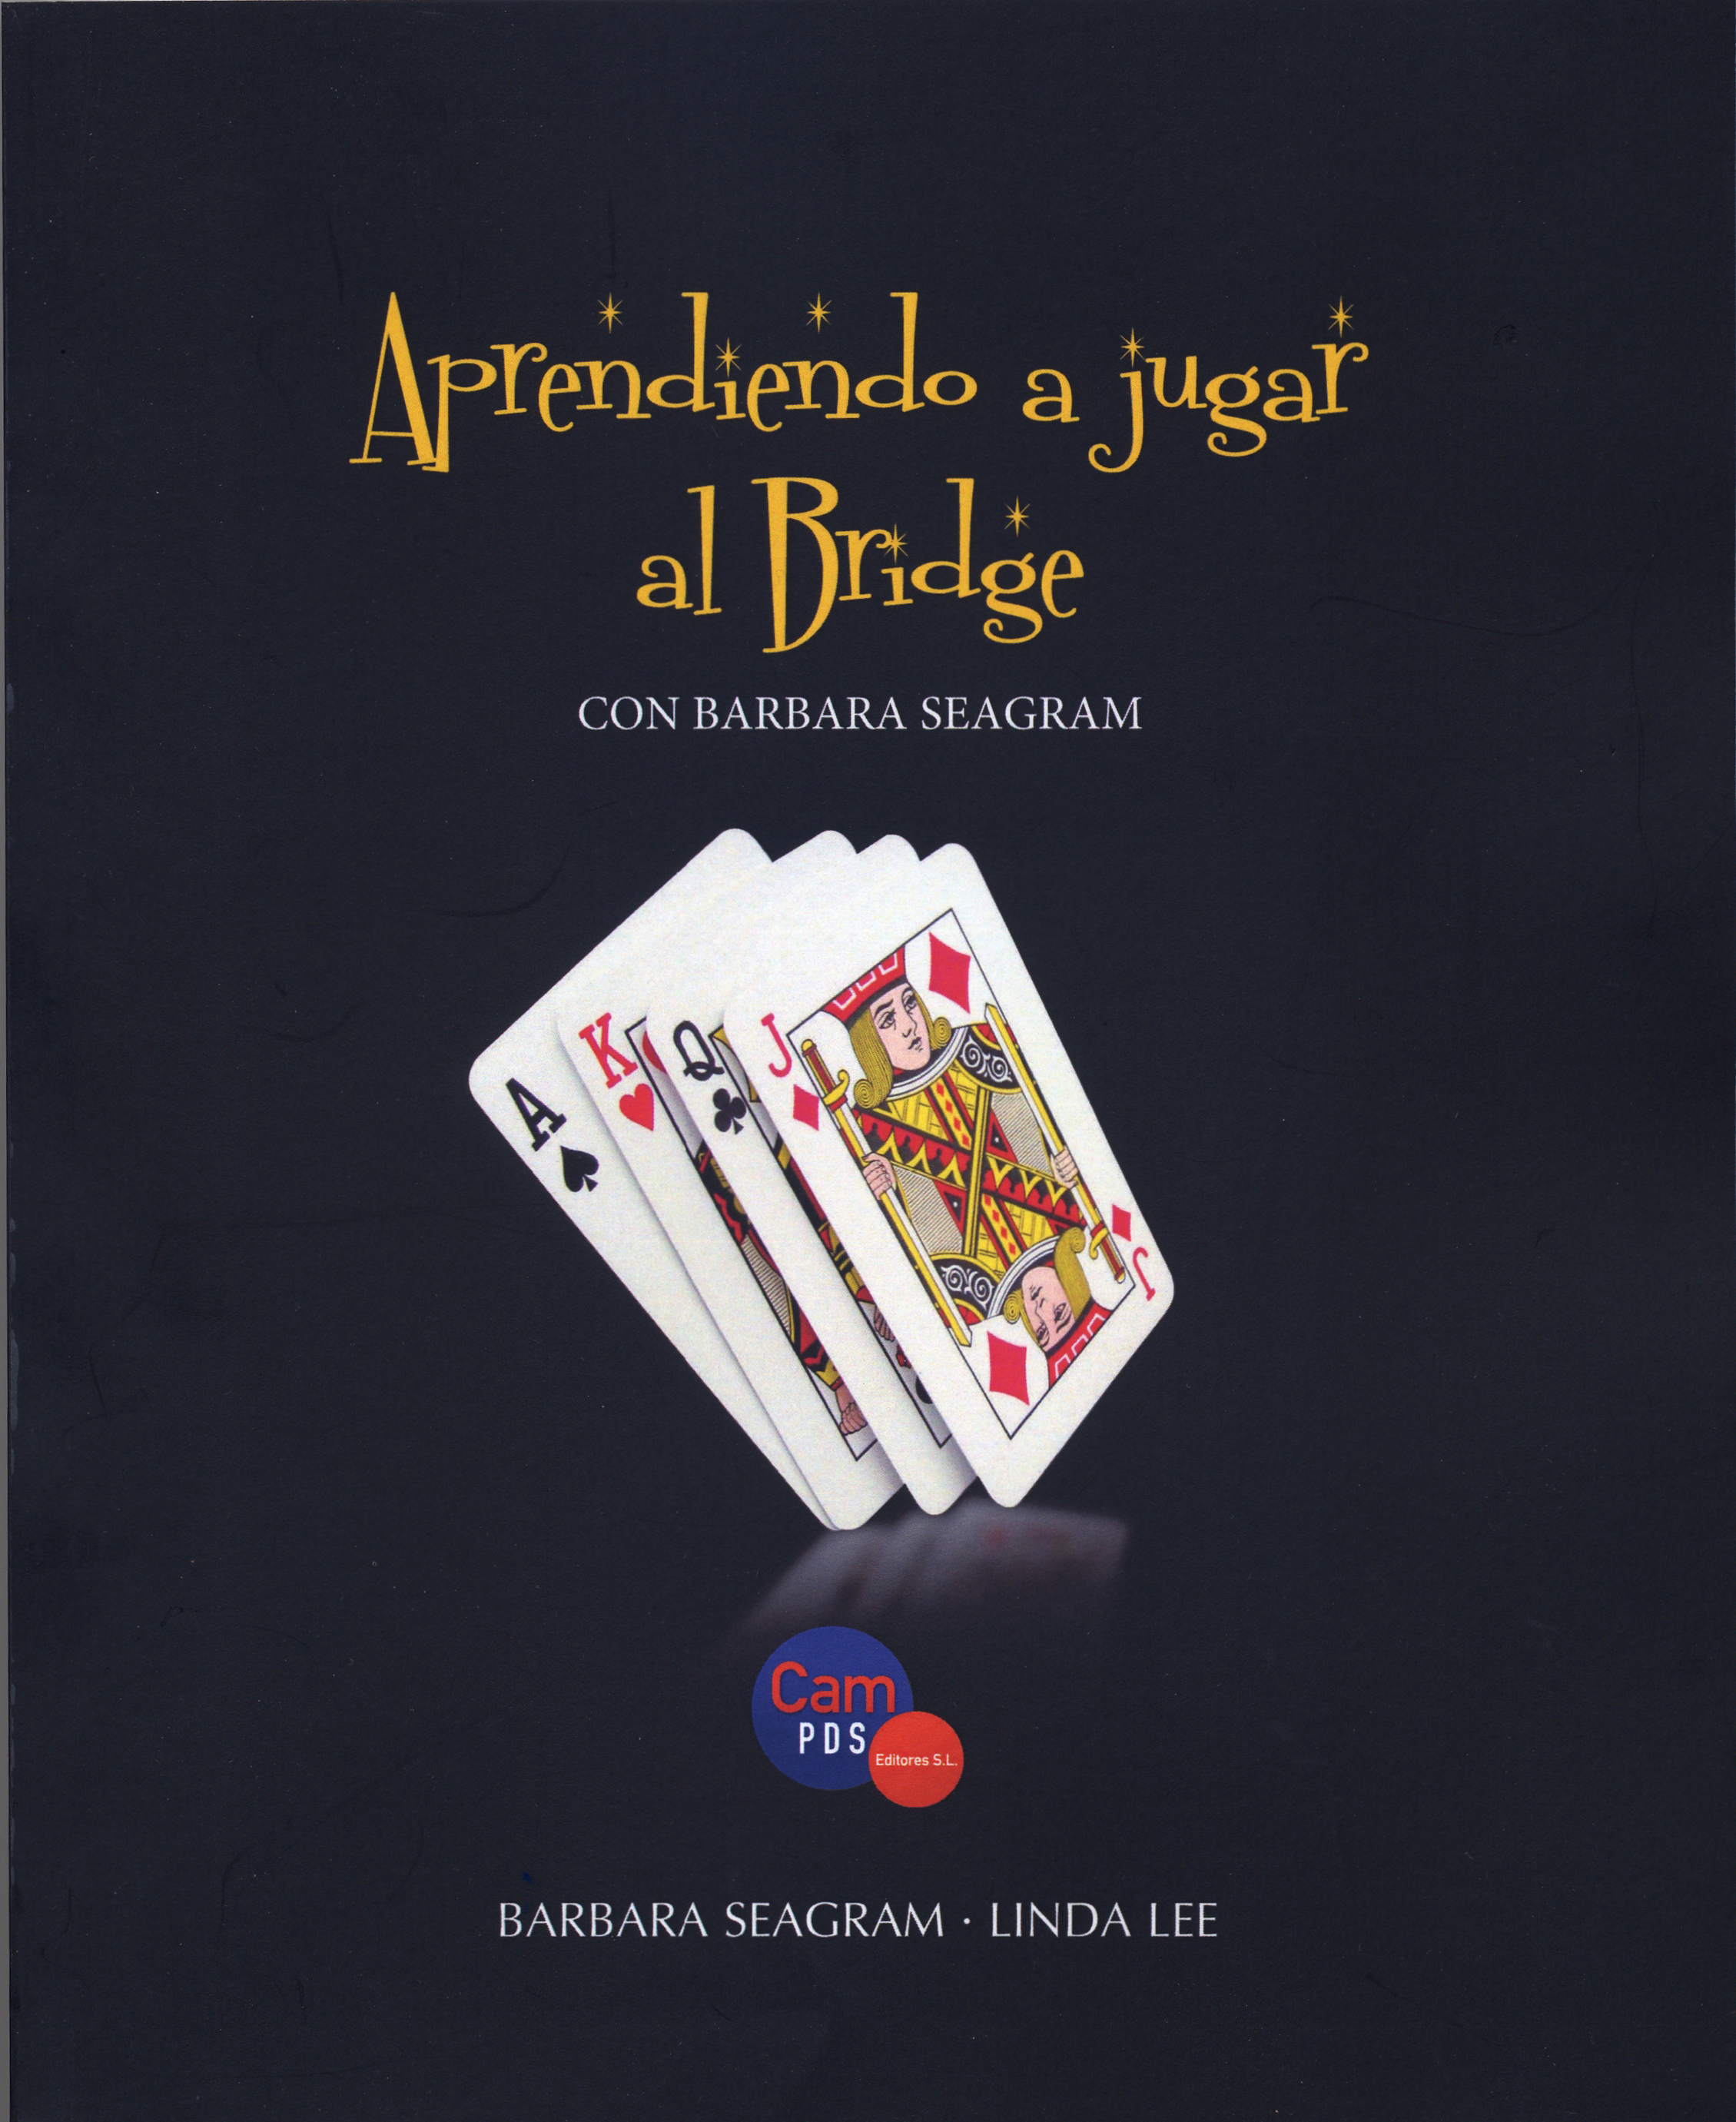 Spanish language cover for Beginning Bridge